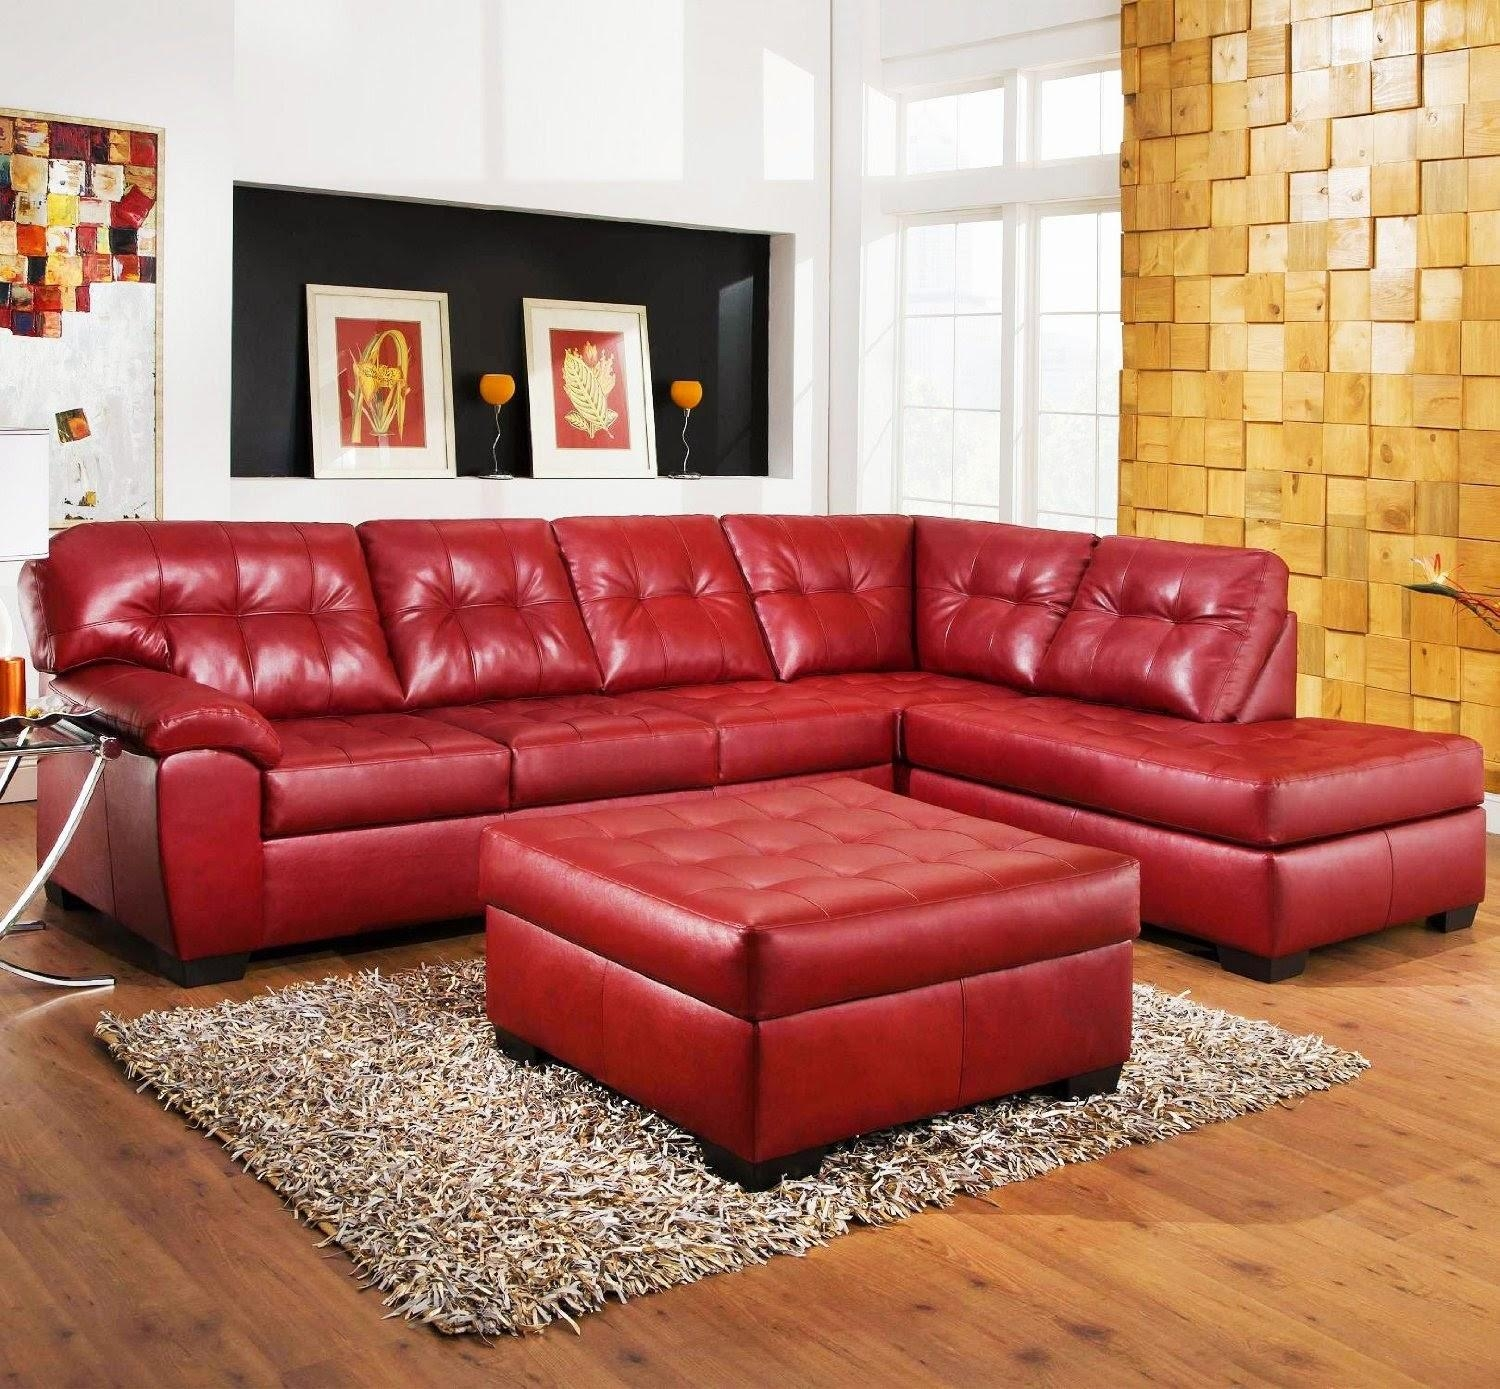 Furniture: Comfy Design Of Oversized Couch For Charming Living With Large Comfortable Sectional Sofas (Image 6 of 20)